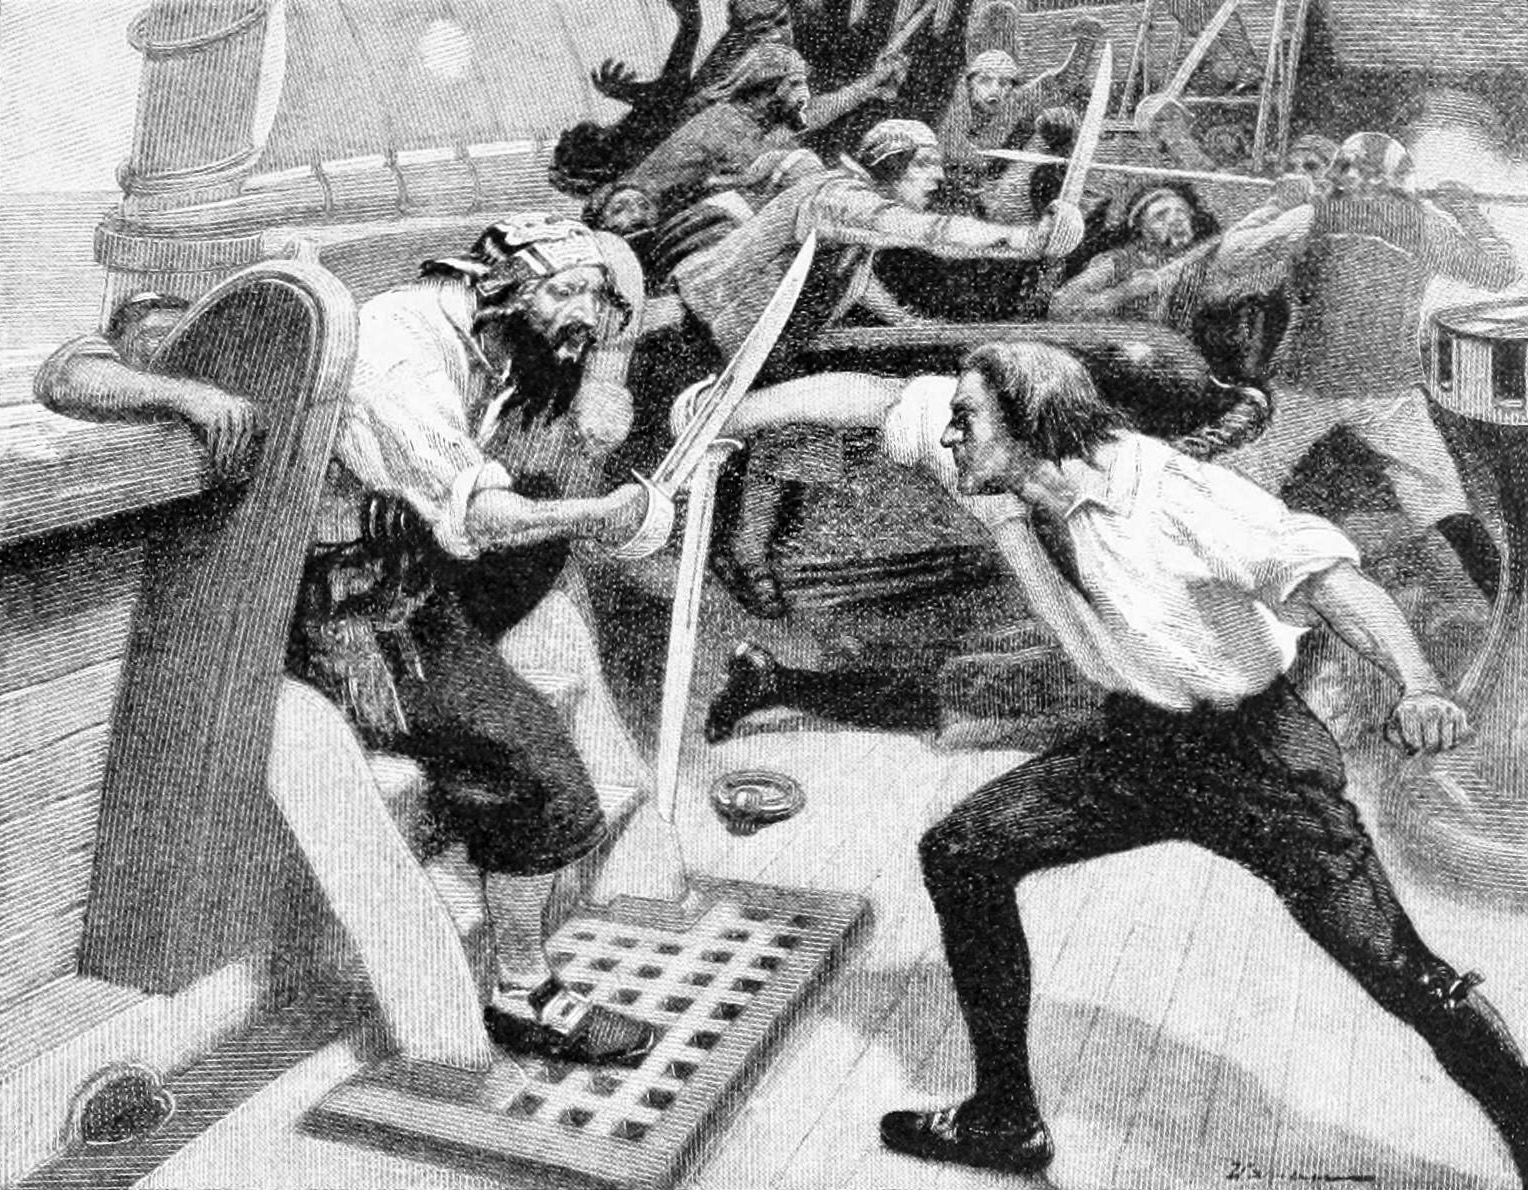 A pirate boarding a ship, sword in hand